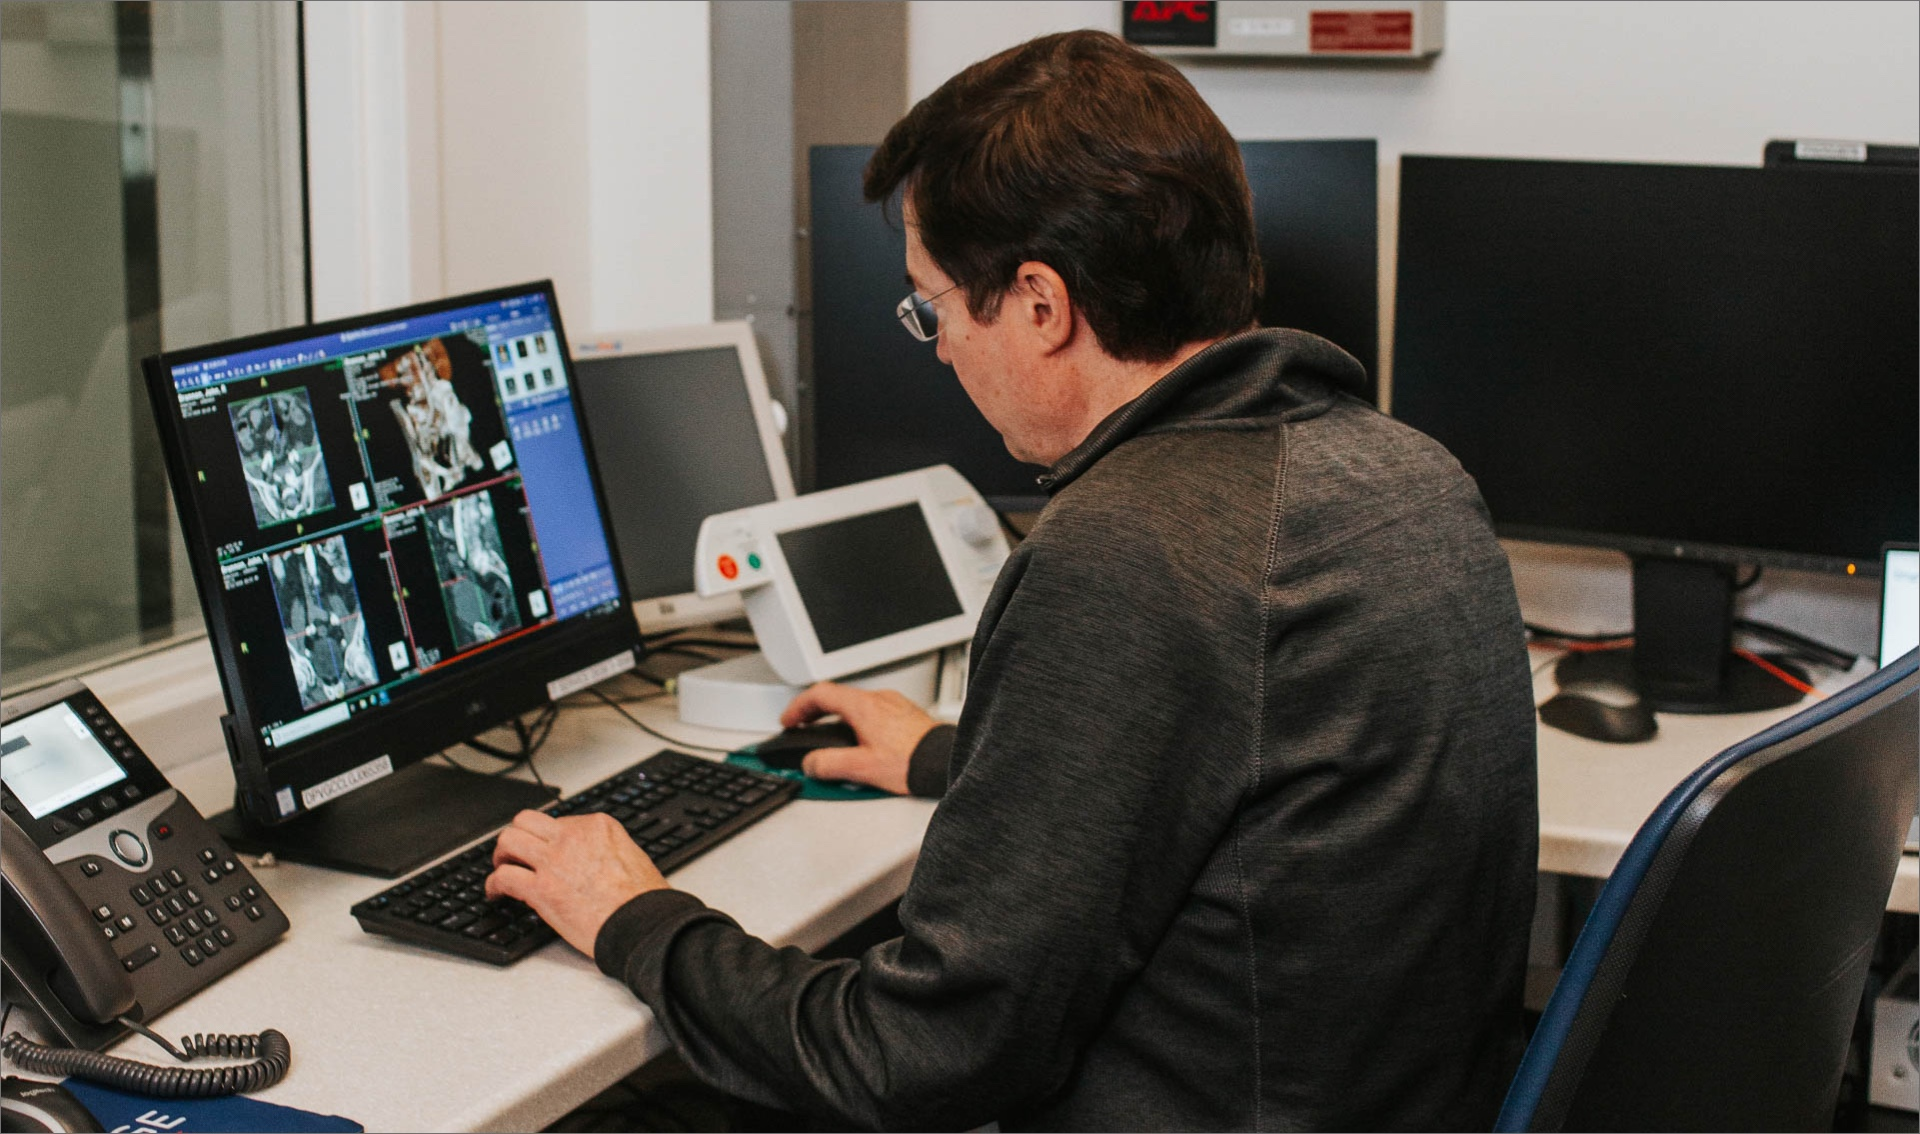 Dr. Gurley works at a computer, looking at scans.